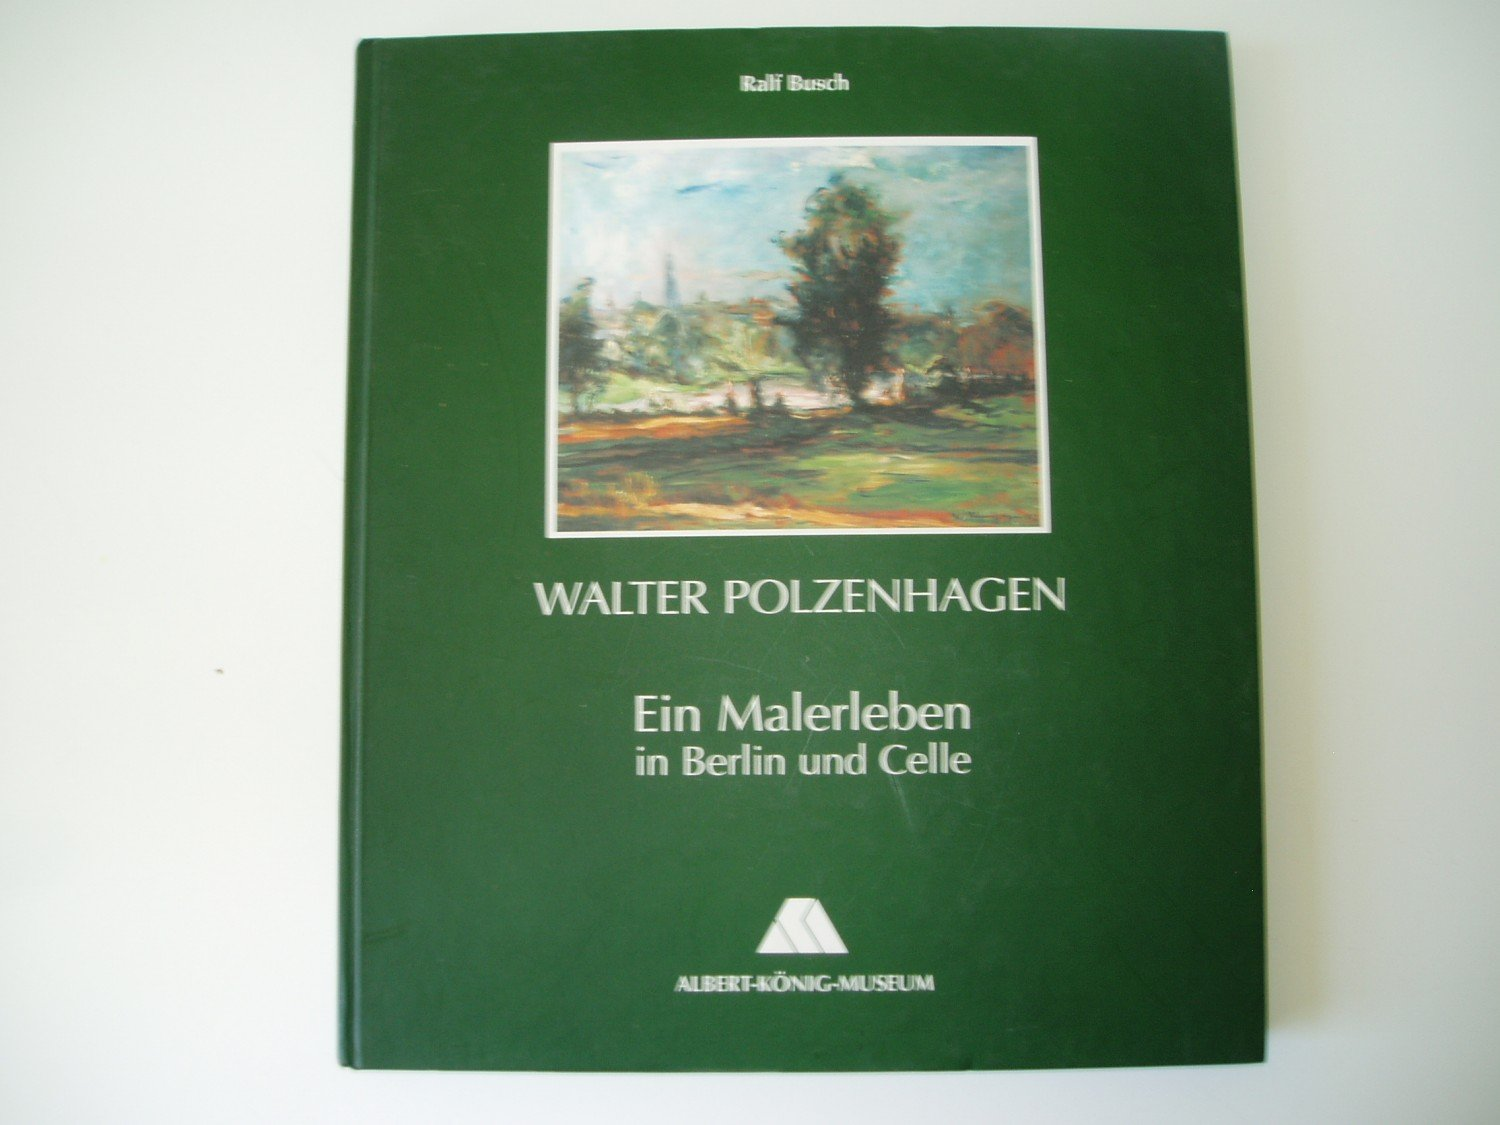 isbn 9783927399341 walter polzenhagen ein malerleben in berlin und celle neu gebraucht kaufen. Black Bedroom Furniture Sets. Home Design Ideas